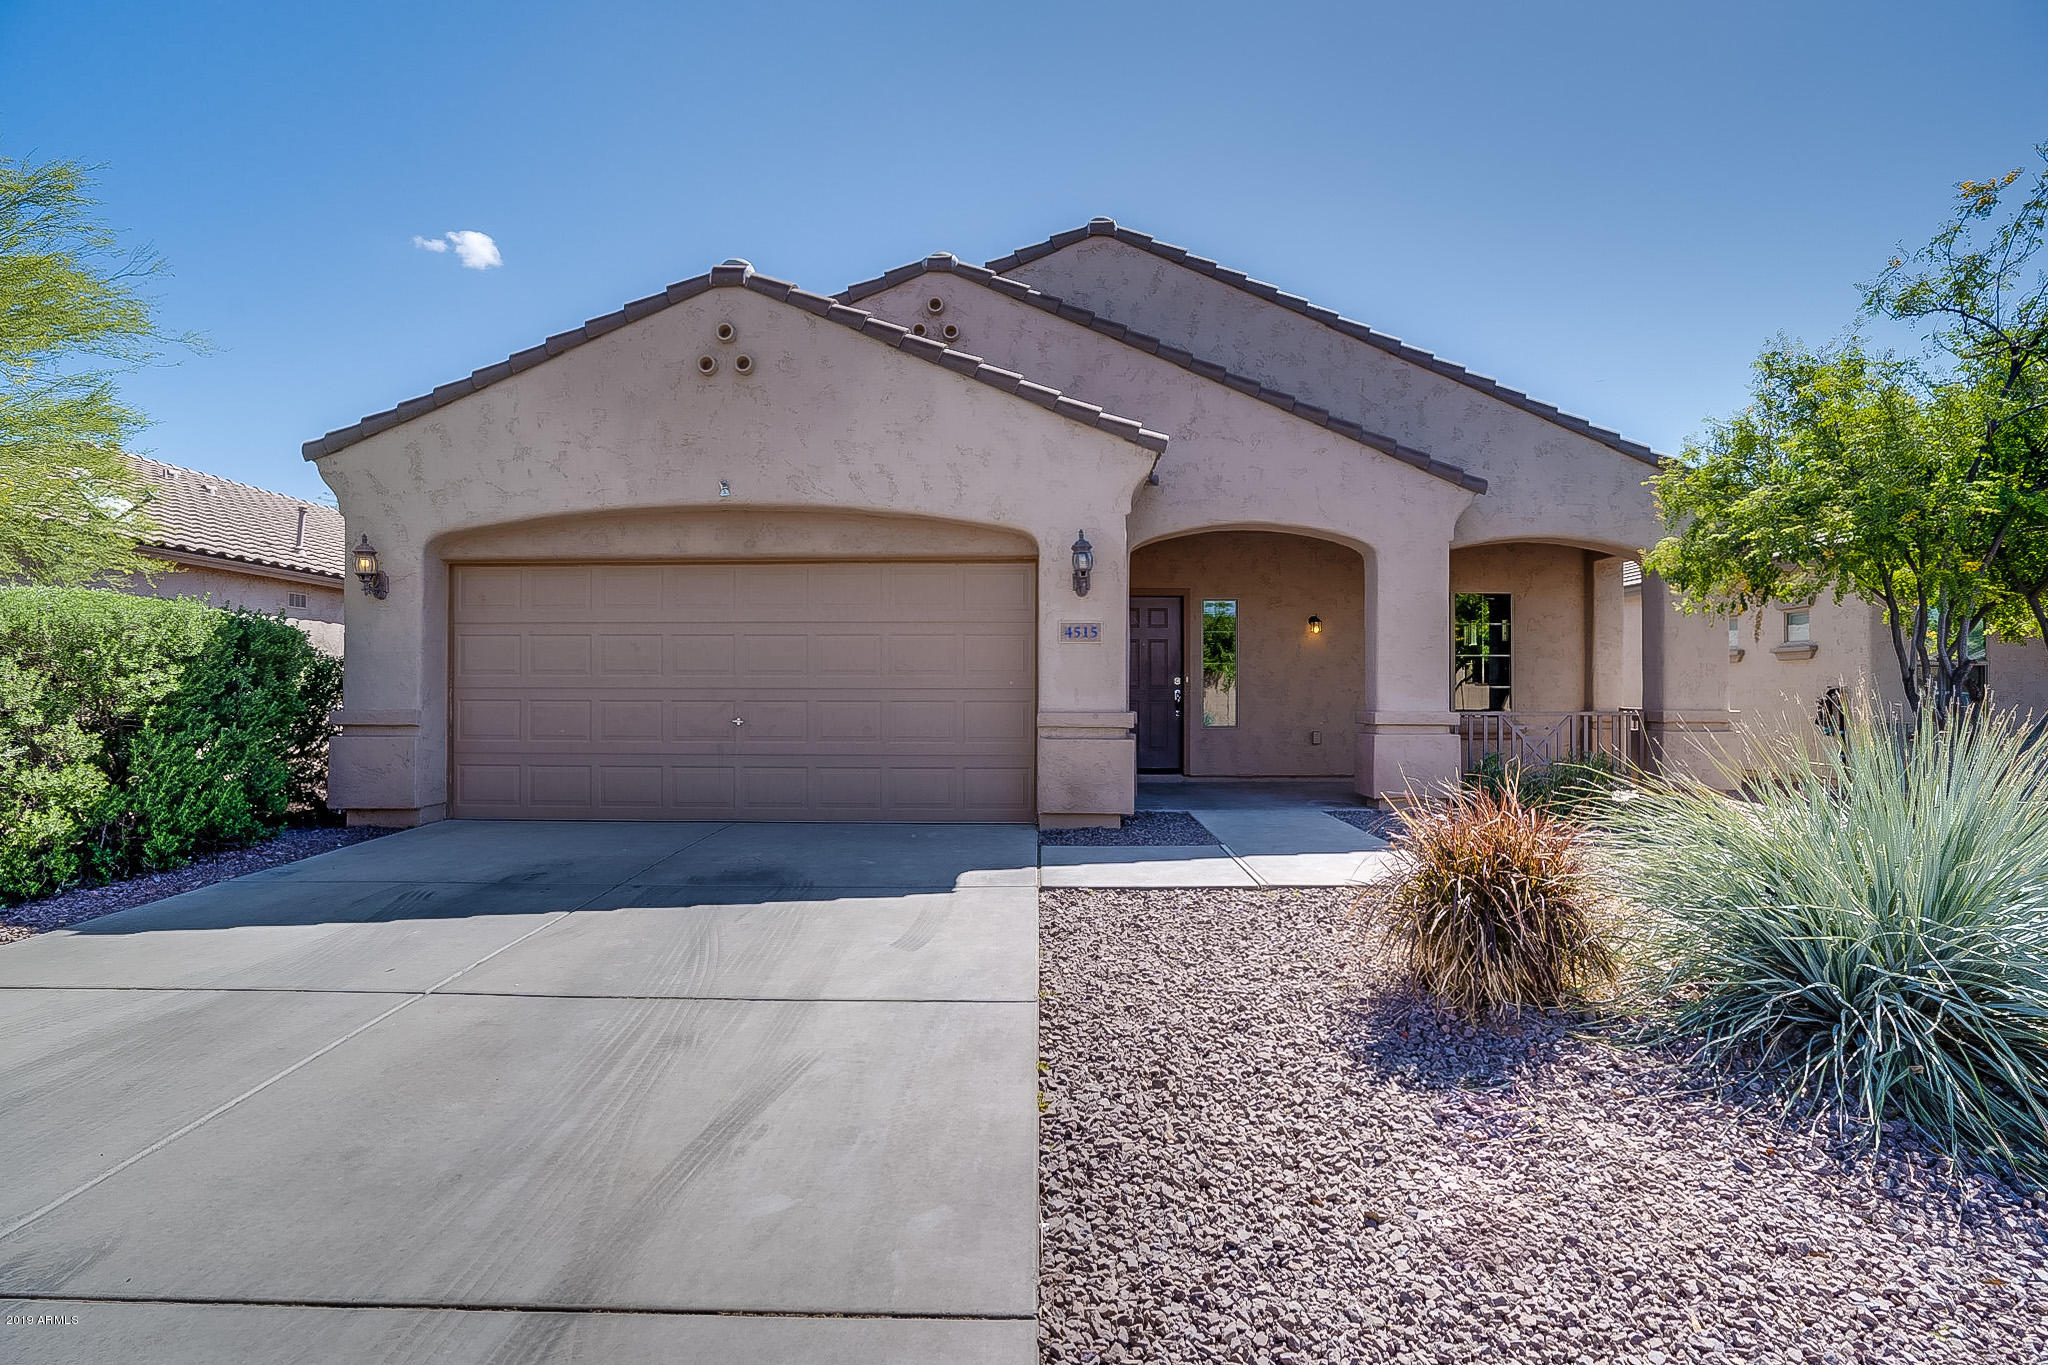 Photo of 4515 S ST CLAIRE --, Mesa, AZ 85212